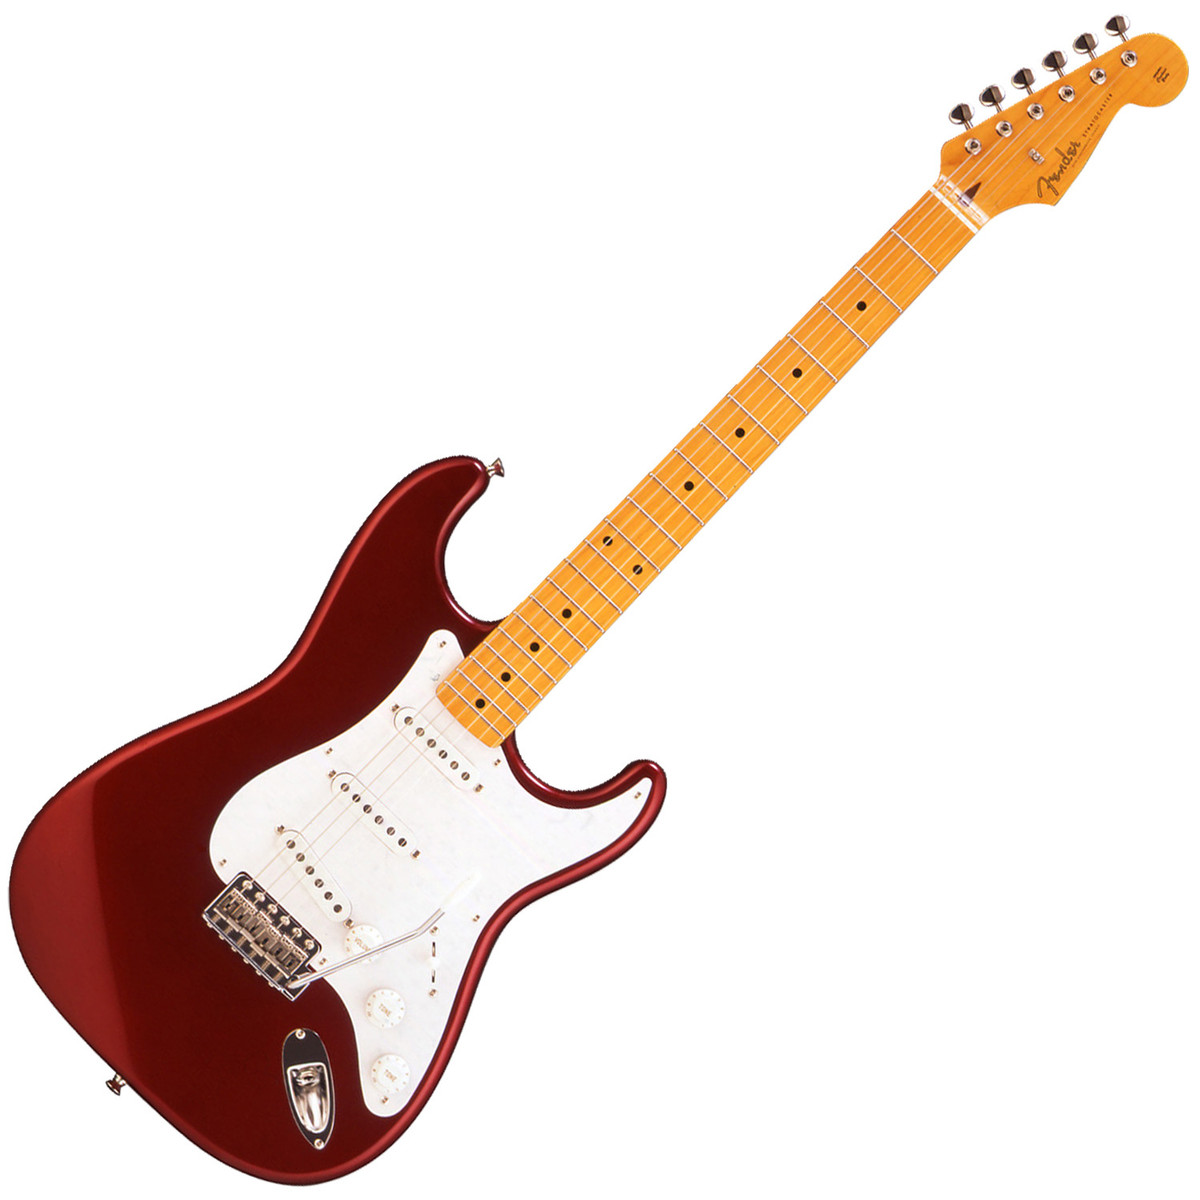 Fender Fsr Classic 50s Texas Special Stratocaster Candy Apple Red